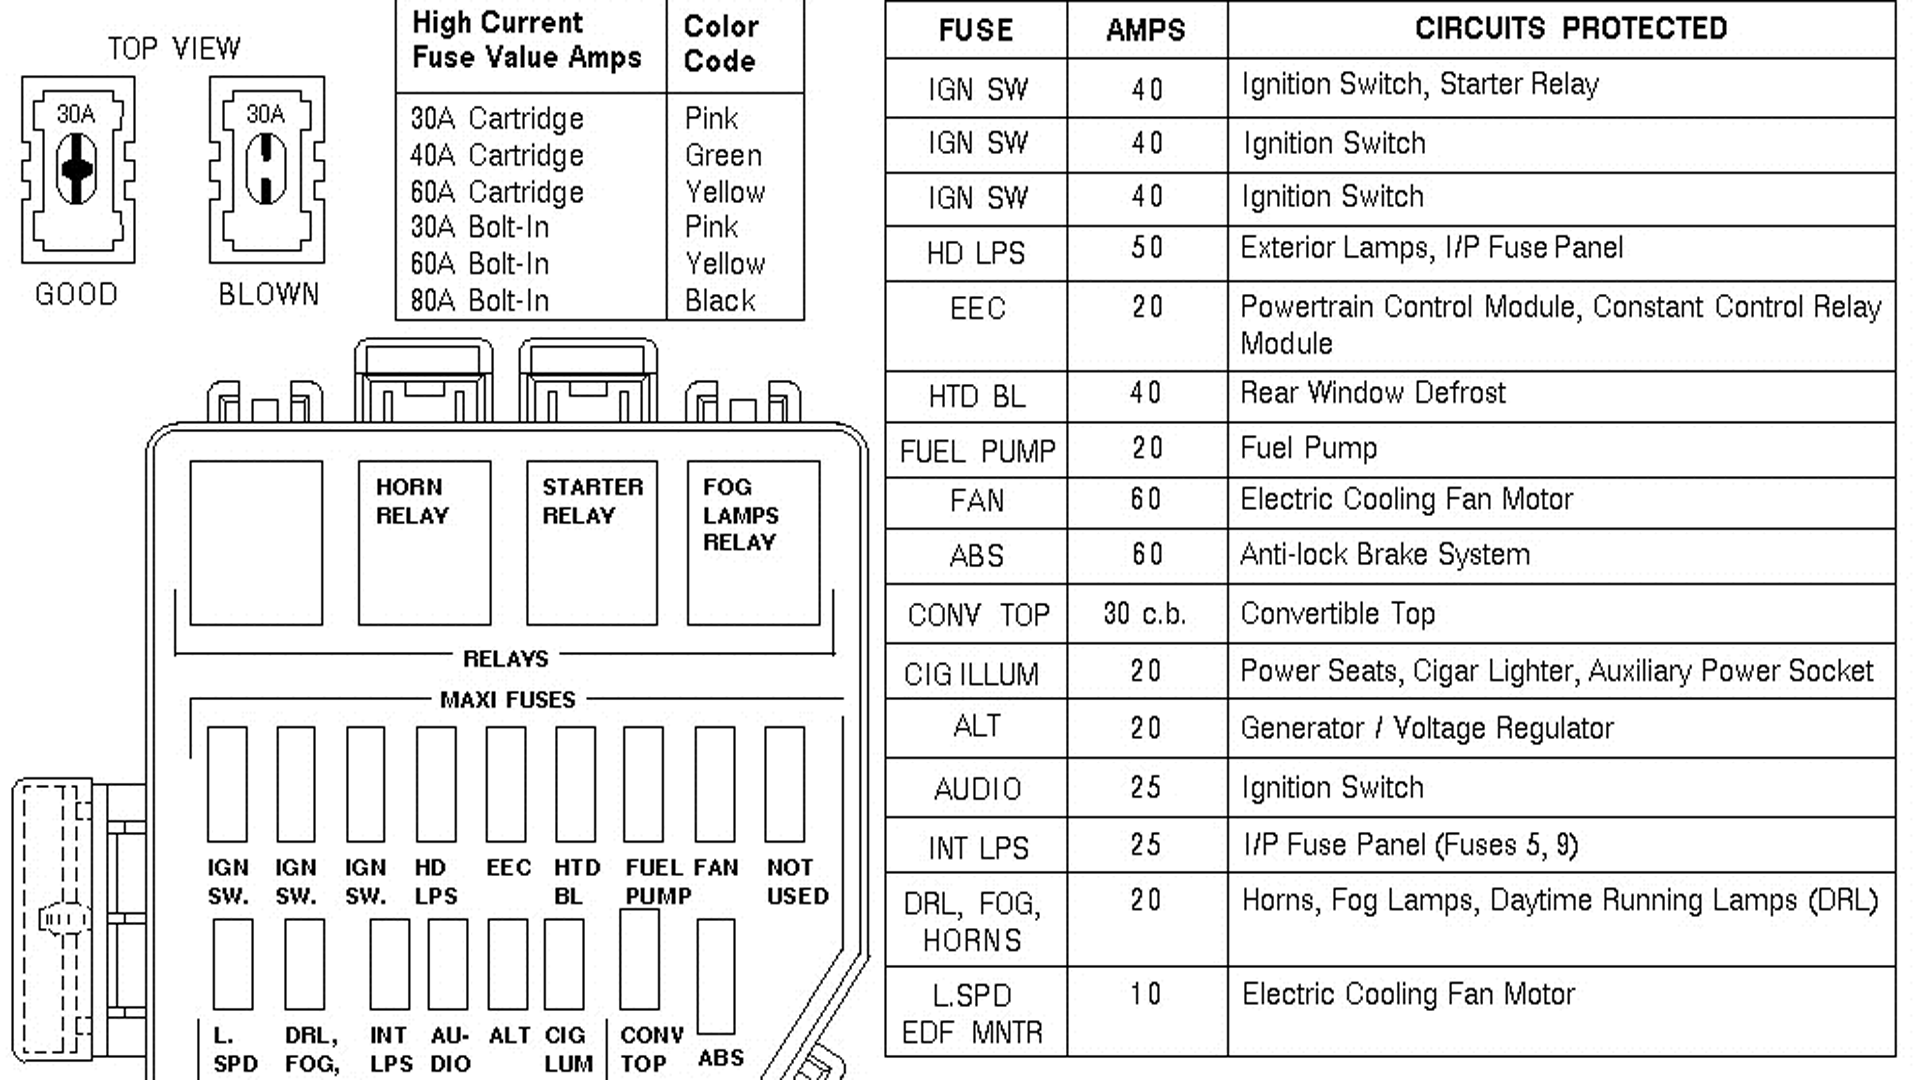 ford mustang v6 and mustang gt 1994-2004: fuse box diagram ...  mustang forums